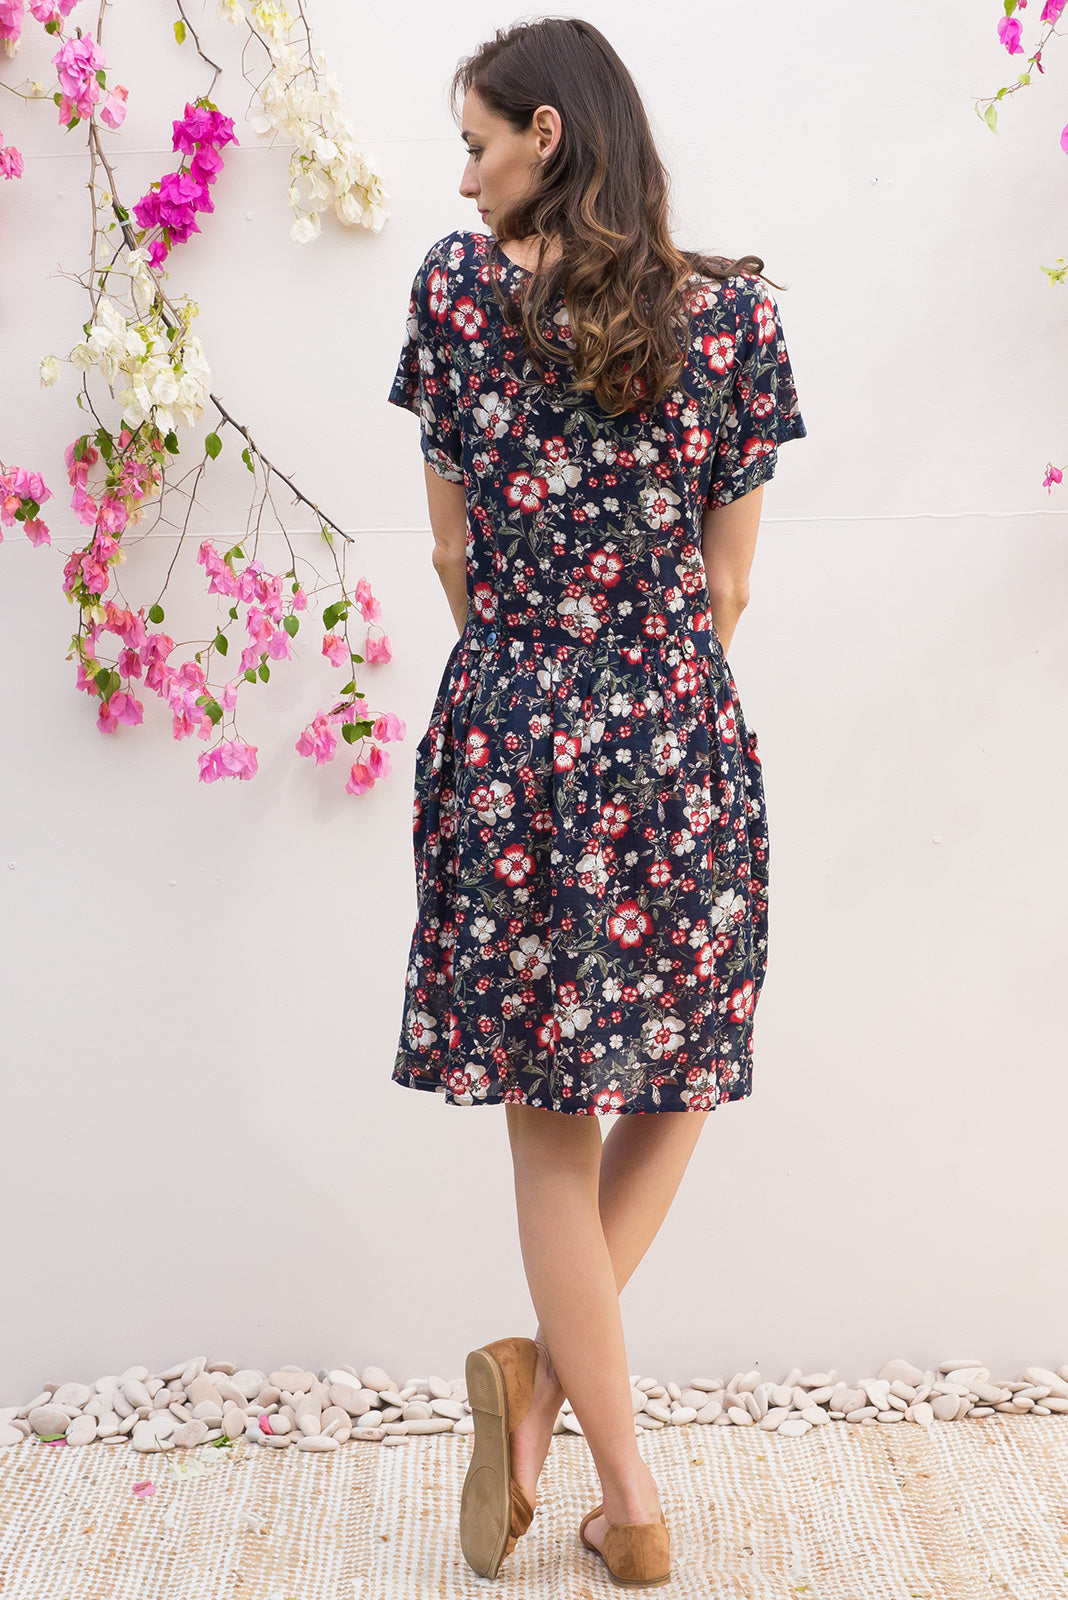 Rosella Rustic Navy Cotton dress features a button front to the drop waist and 2 front pockets in a bohemian floral navy print on a cotton rayon blend fabric